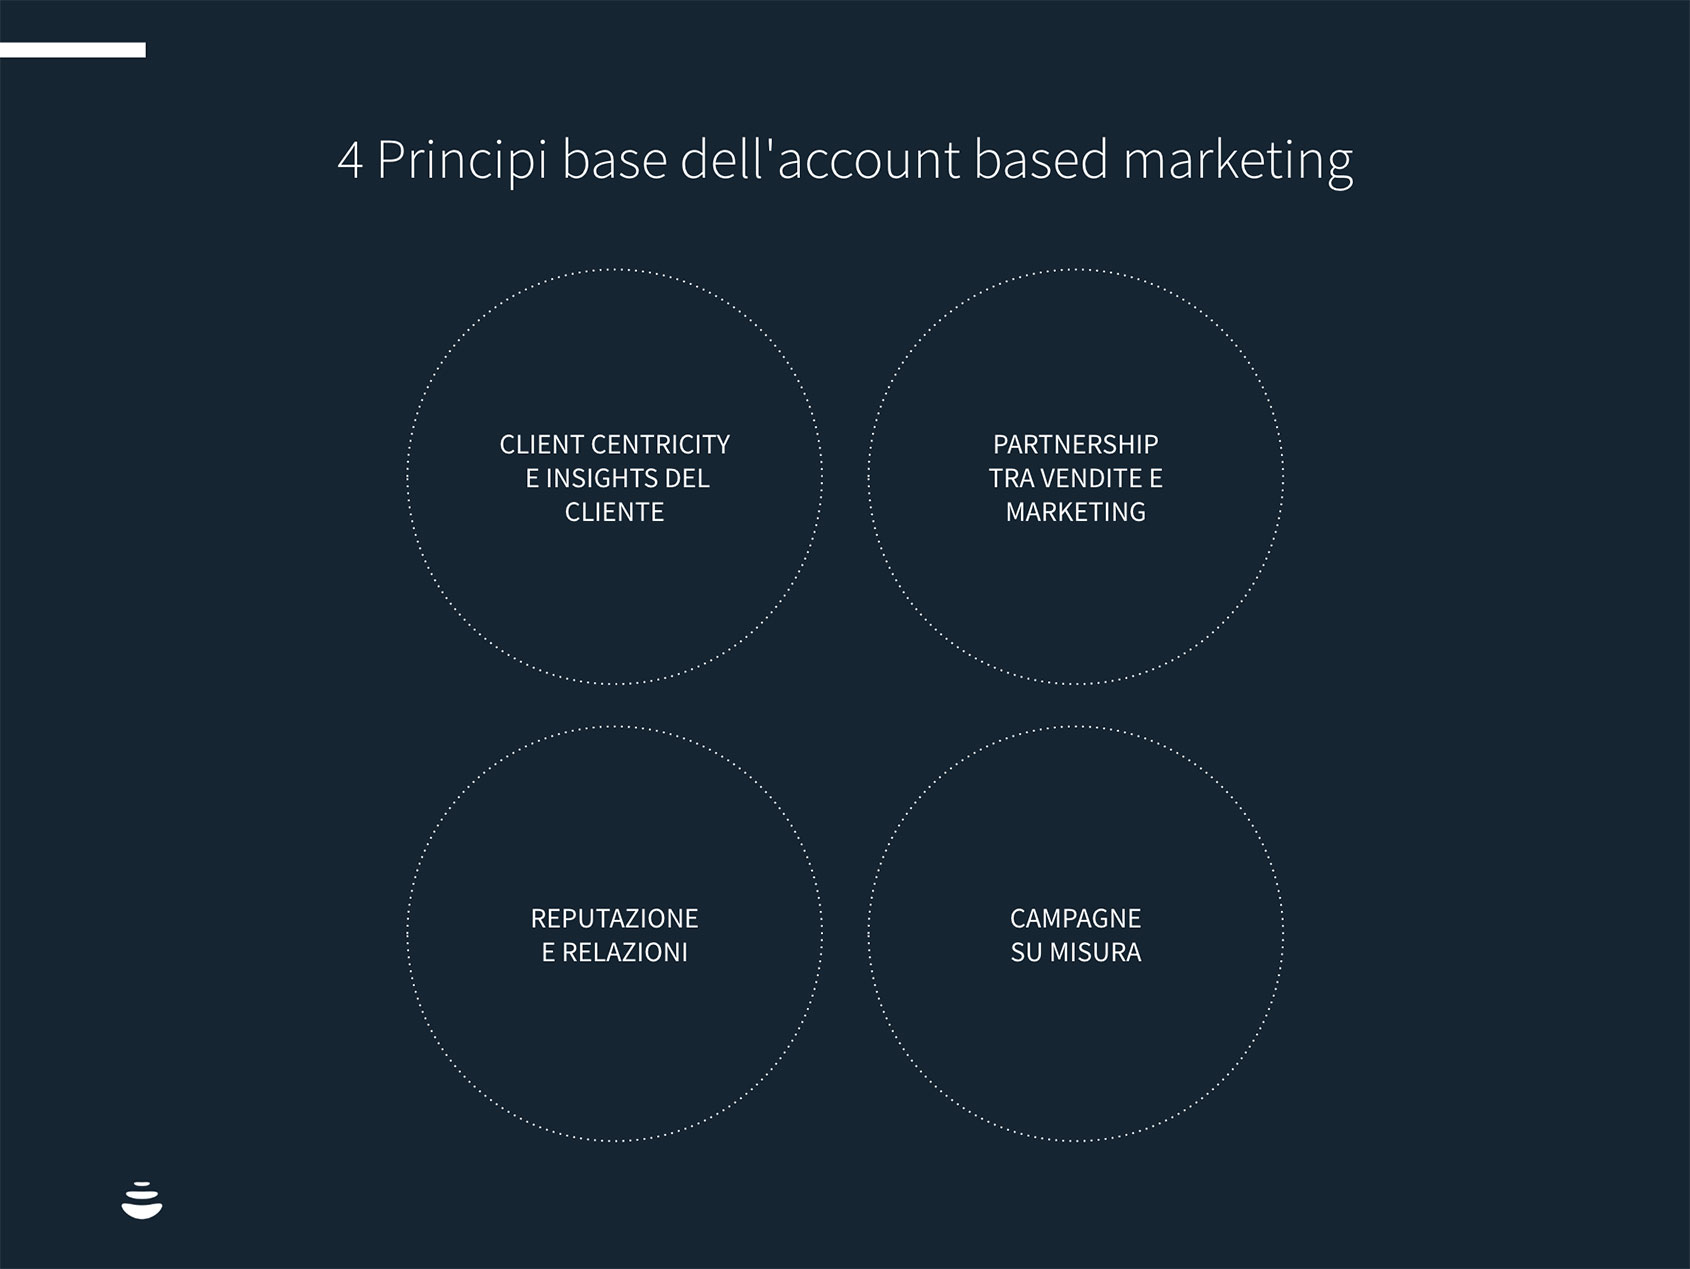 4 Principi base dell'account based marketing